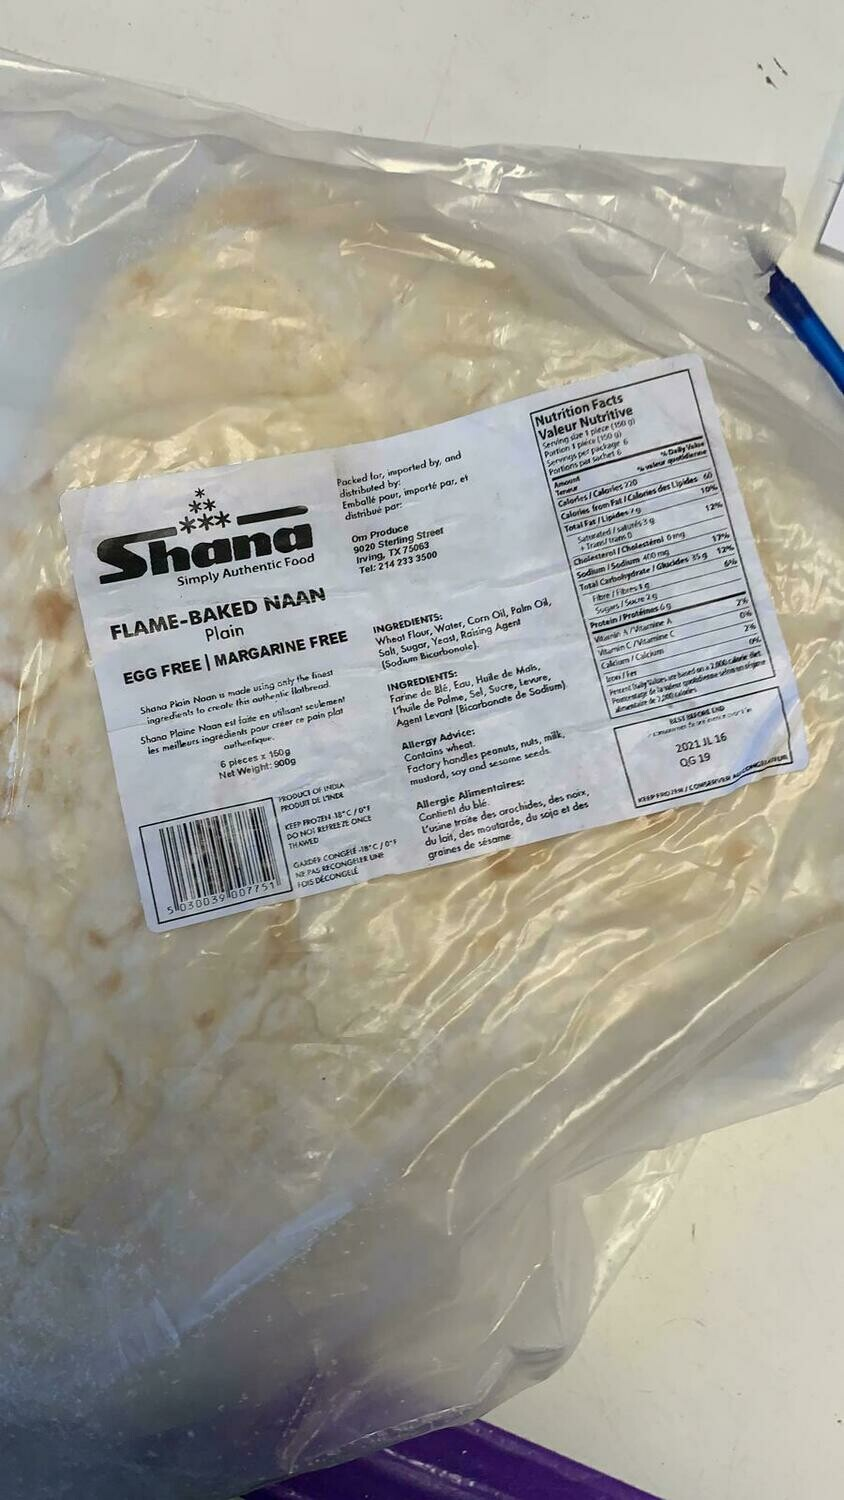 SHANA JUMBO PLAIN NAAN 6pc